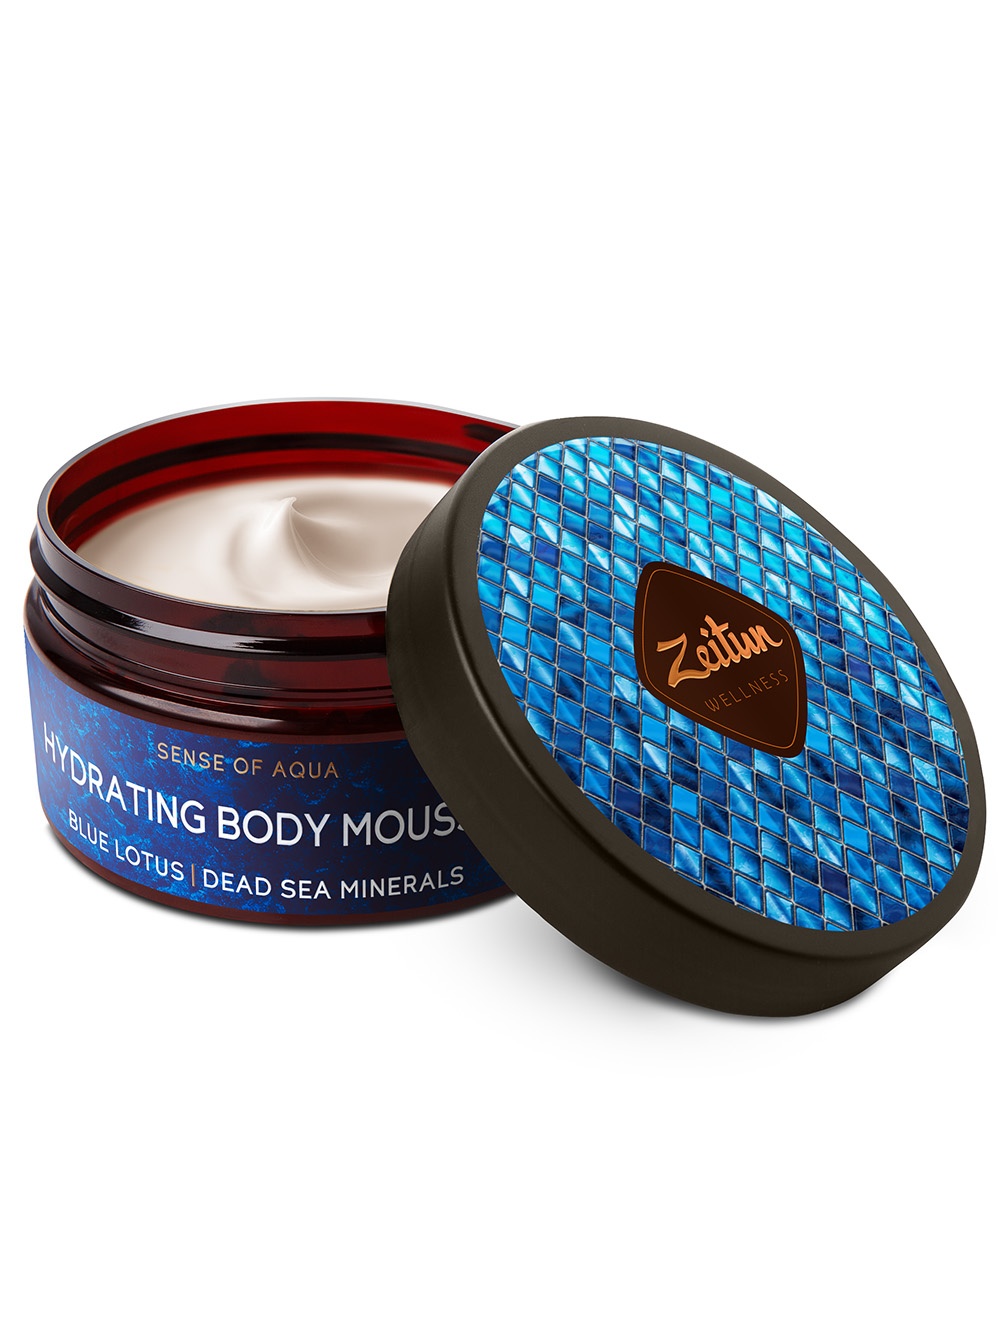 Sense of Aqua Hydrating Body Mousse with Blue Lotus and Dead Sea minerals